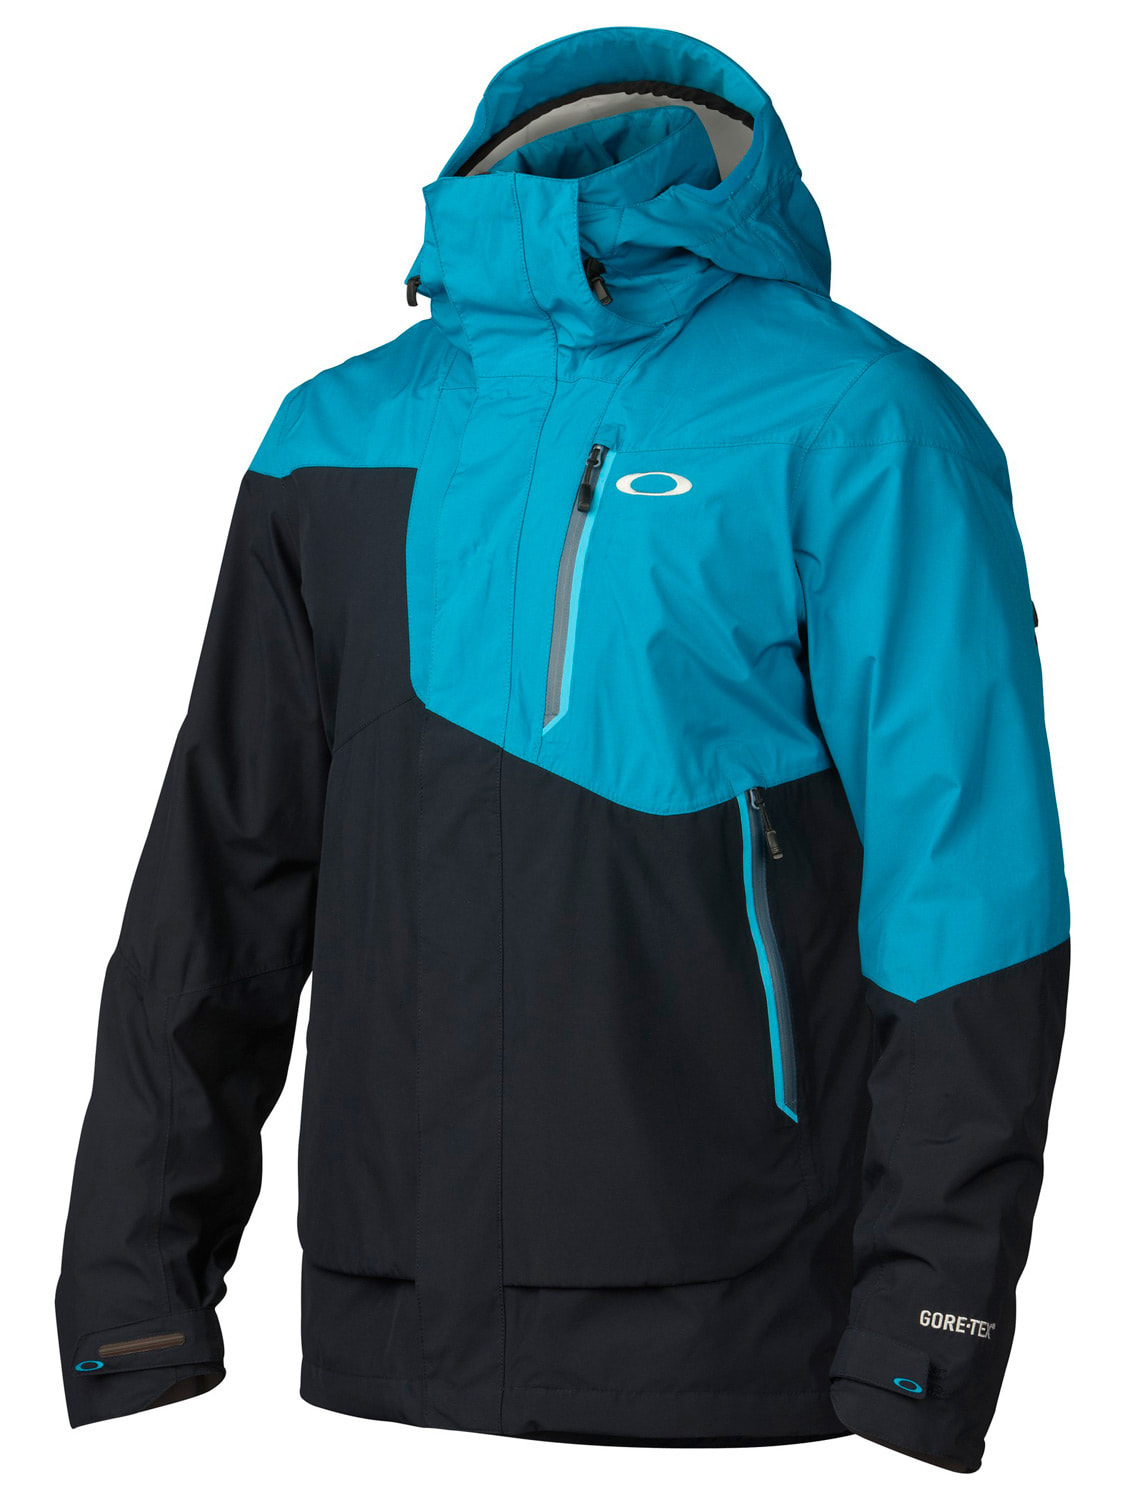 oakley allied gore tex snowboard jacket. Black Bedroom Furniture Sets. Home Design Ideas